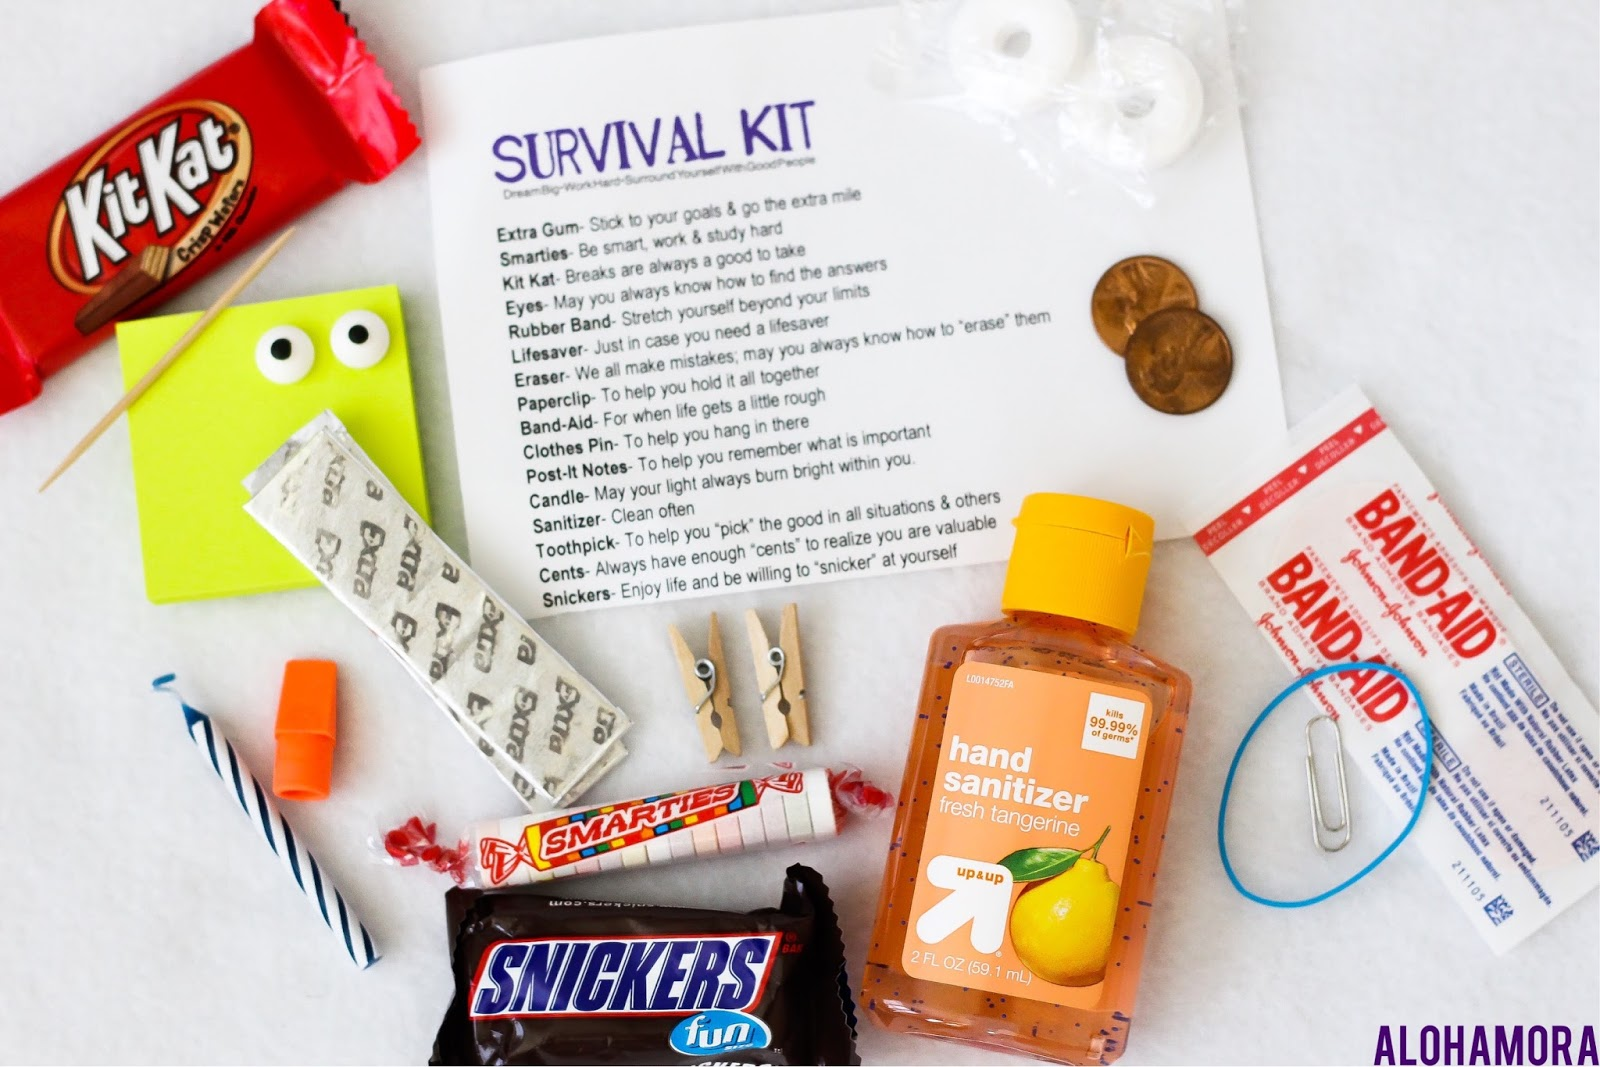 Alohamora open a book high school graduate diy survival kit diy in college i learned i could get by on 30 a month for groceries in college i learned i could work more study more and have more fun with friends than i solutioingenieria Image collections